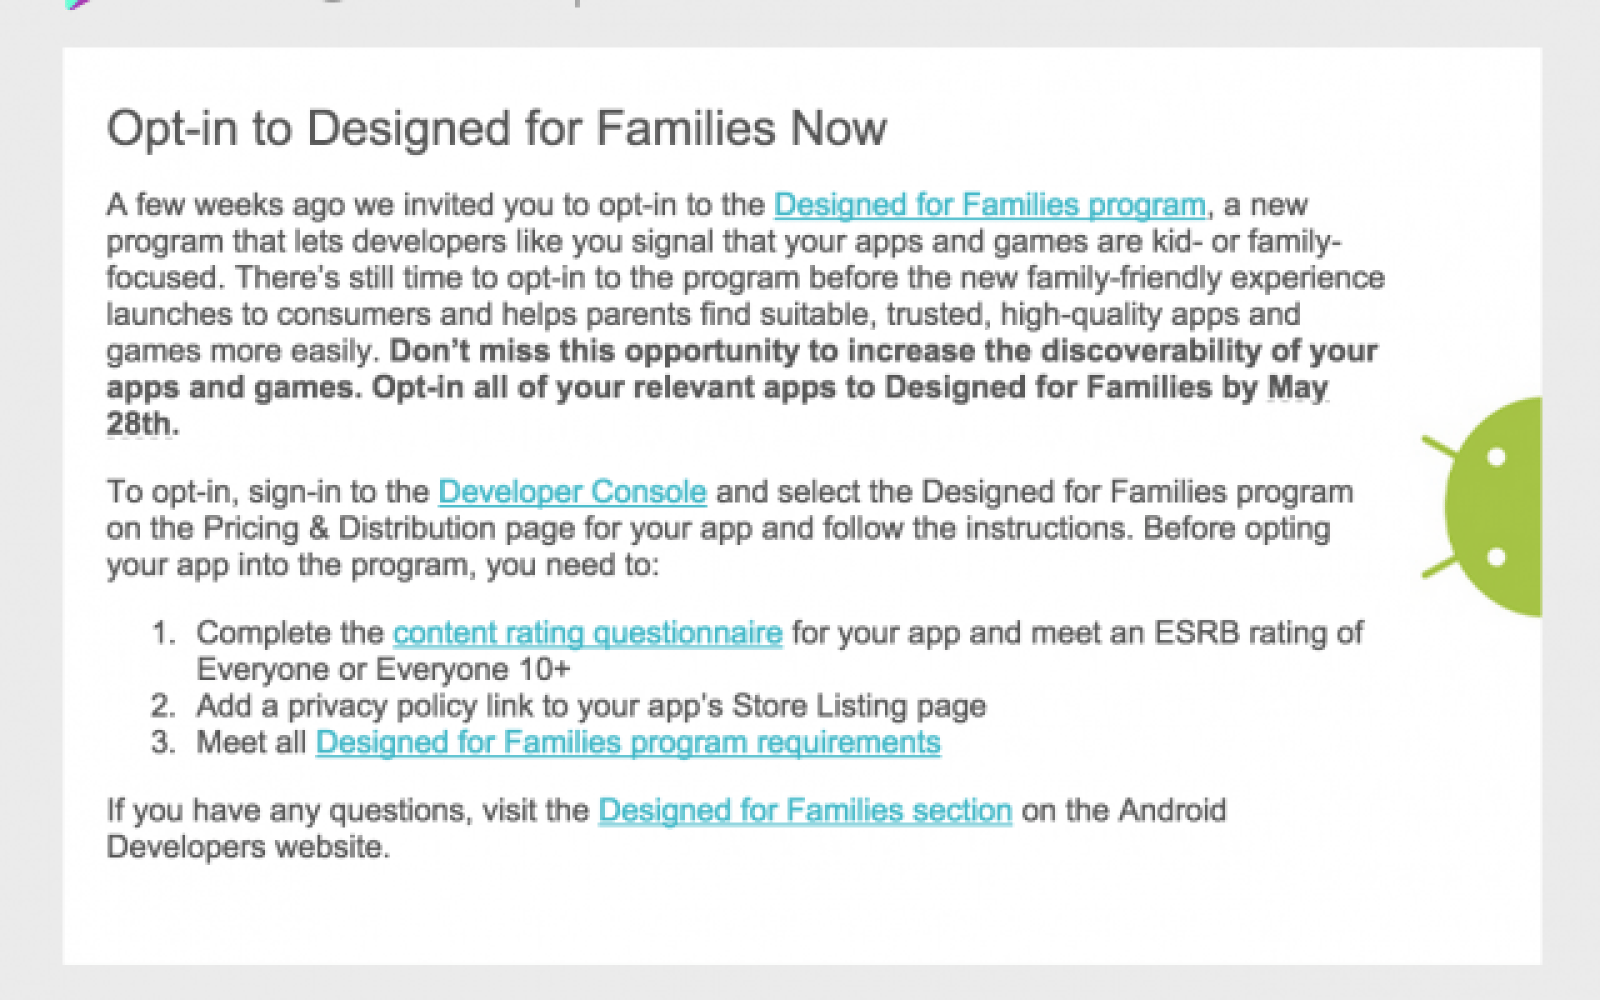 Google's 'Designed for Families' Play Store program likely